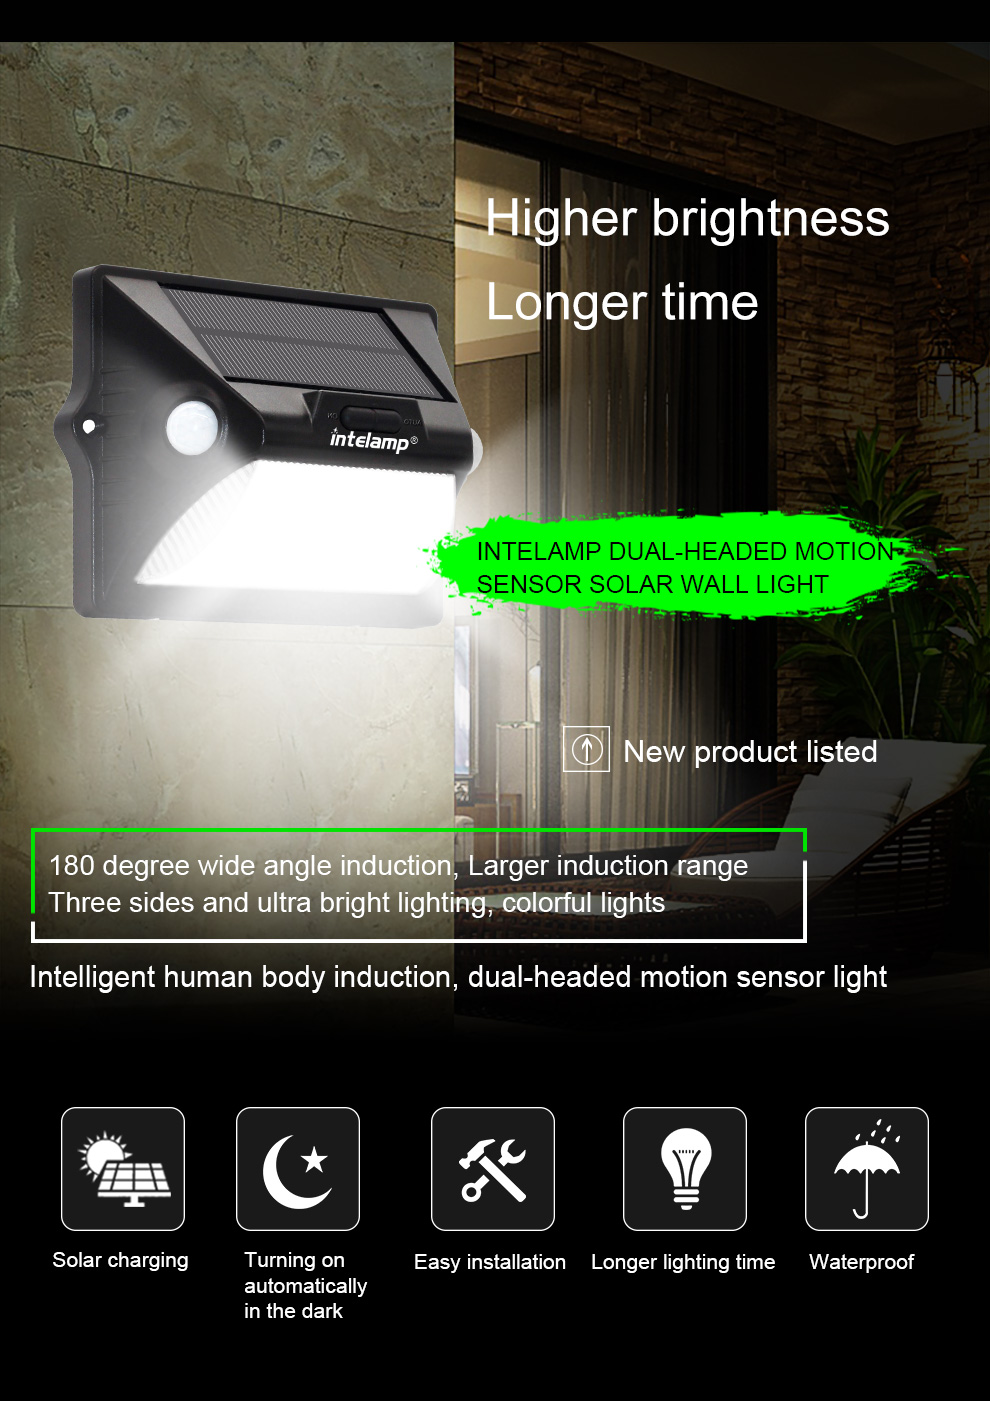 Intelamp 7 color changing waterproof garden solar motion sensor wall light for lighting and decoration